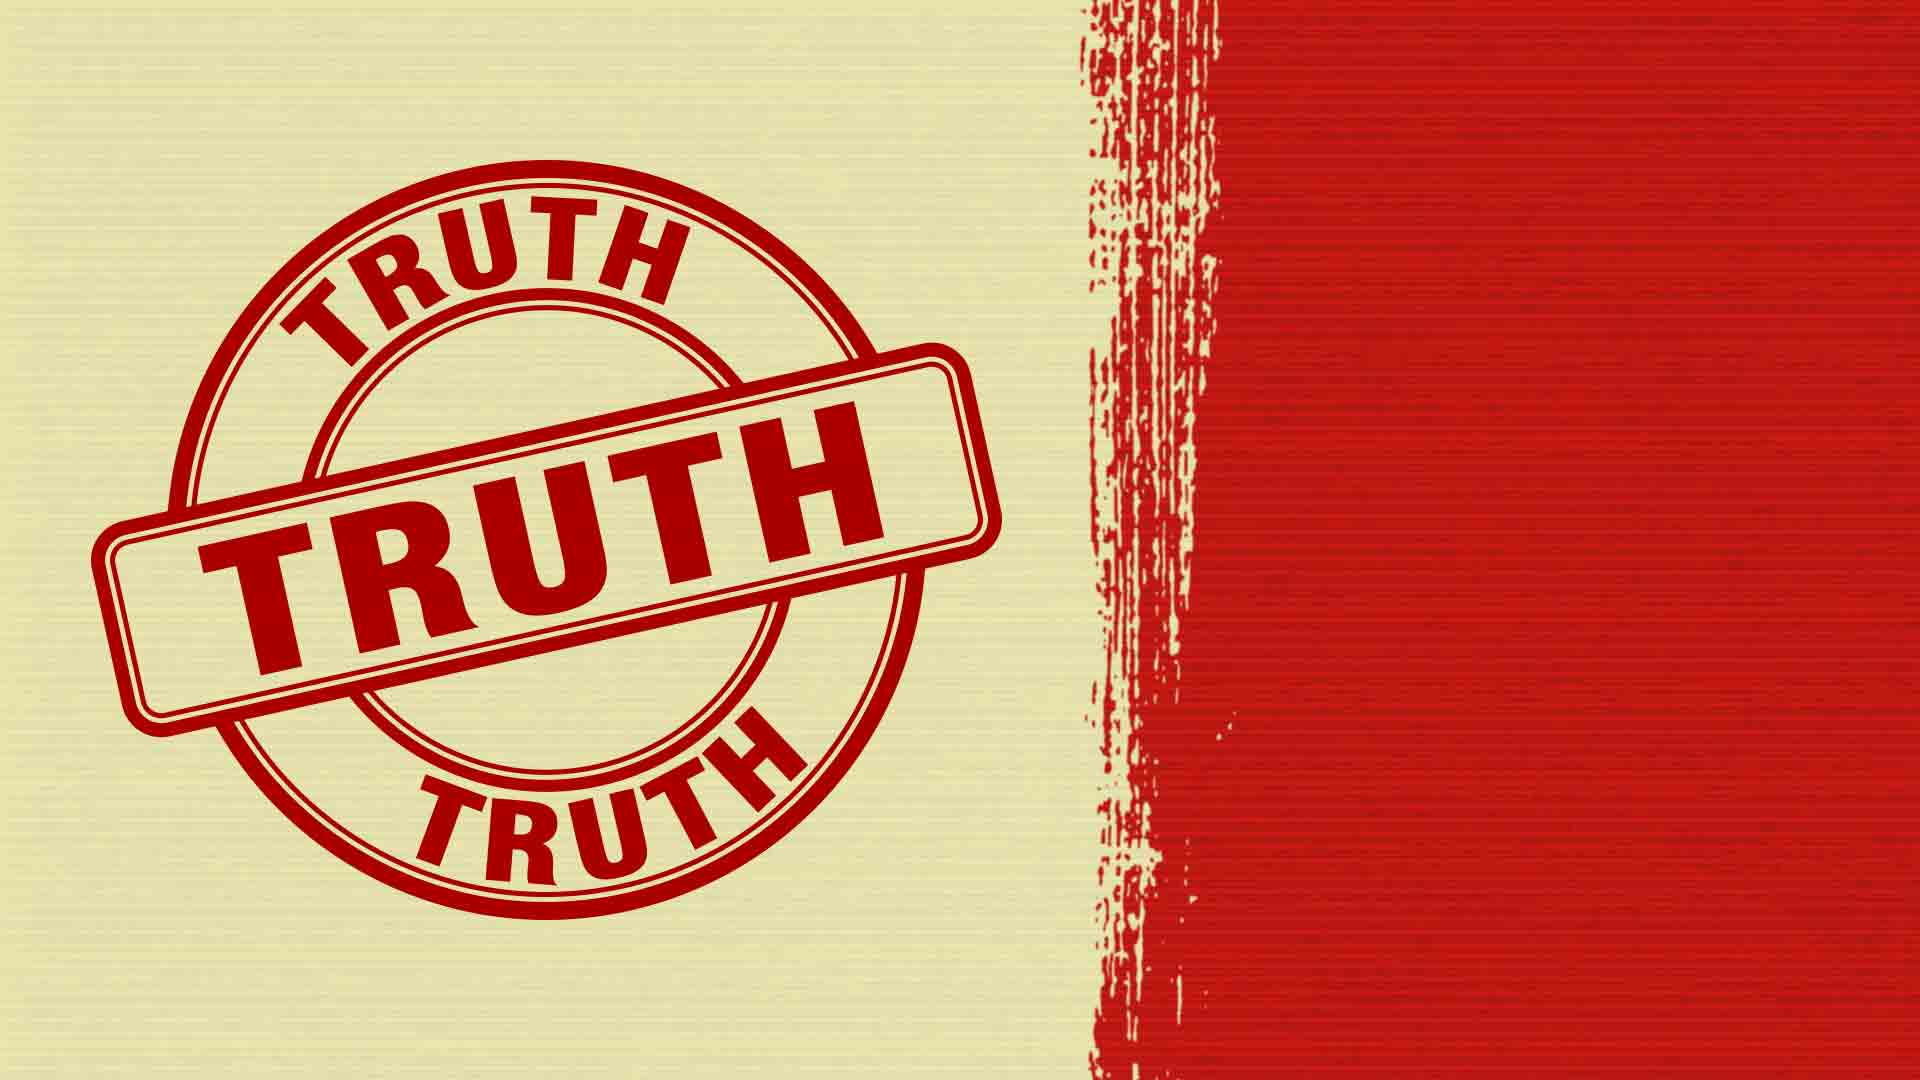 Truth is Authority. Authority is not Truth